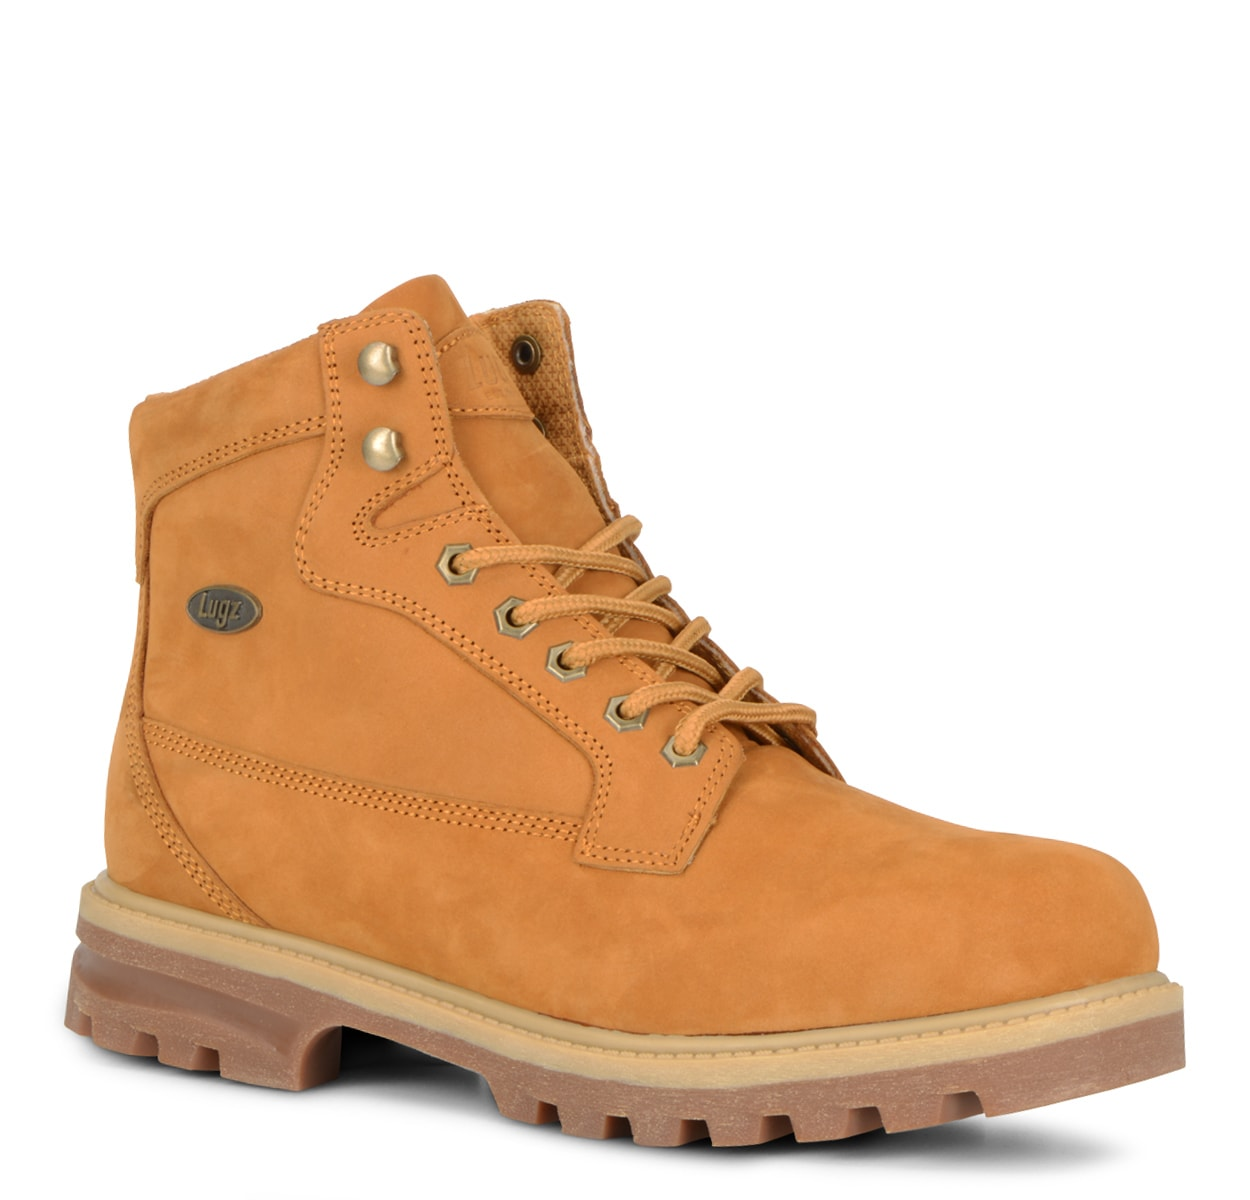 Men's Brigade Hi 6-Inch Boot (Choose Your Color: Golden Wheat/Cream/Gum, Choose Your Size: 10.5)